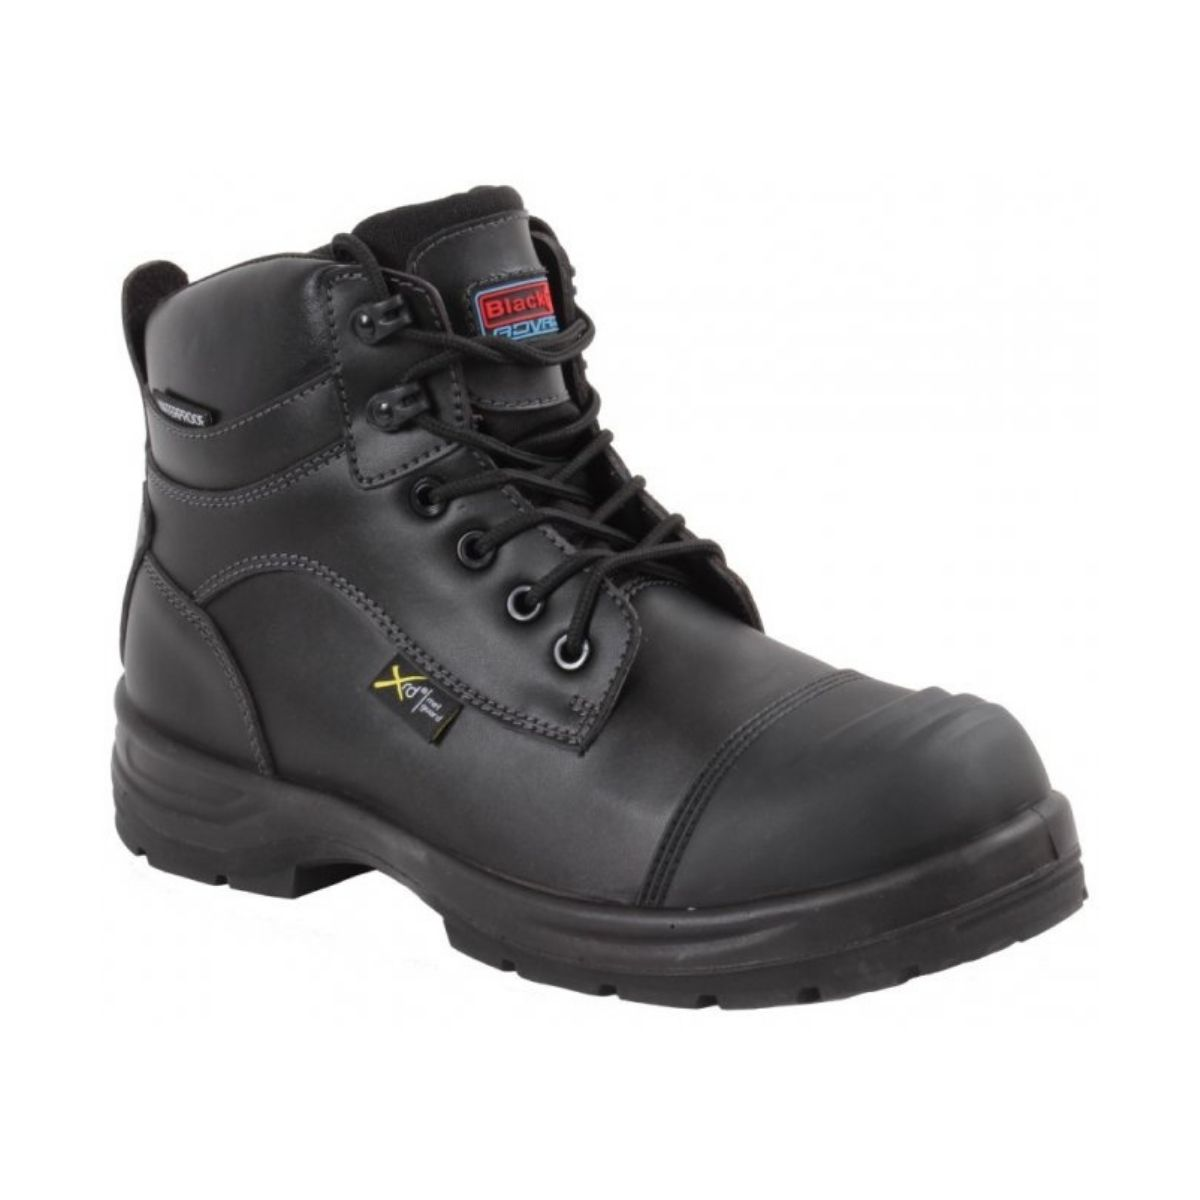 SF3001 Blackrock Lincoln Internal Metatarsal Waterproof Boots